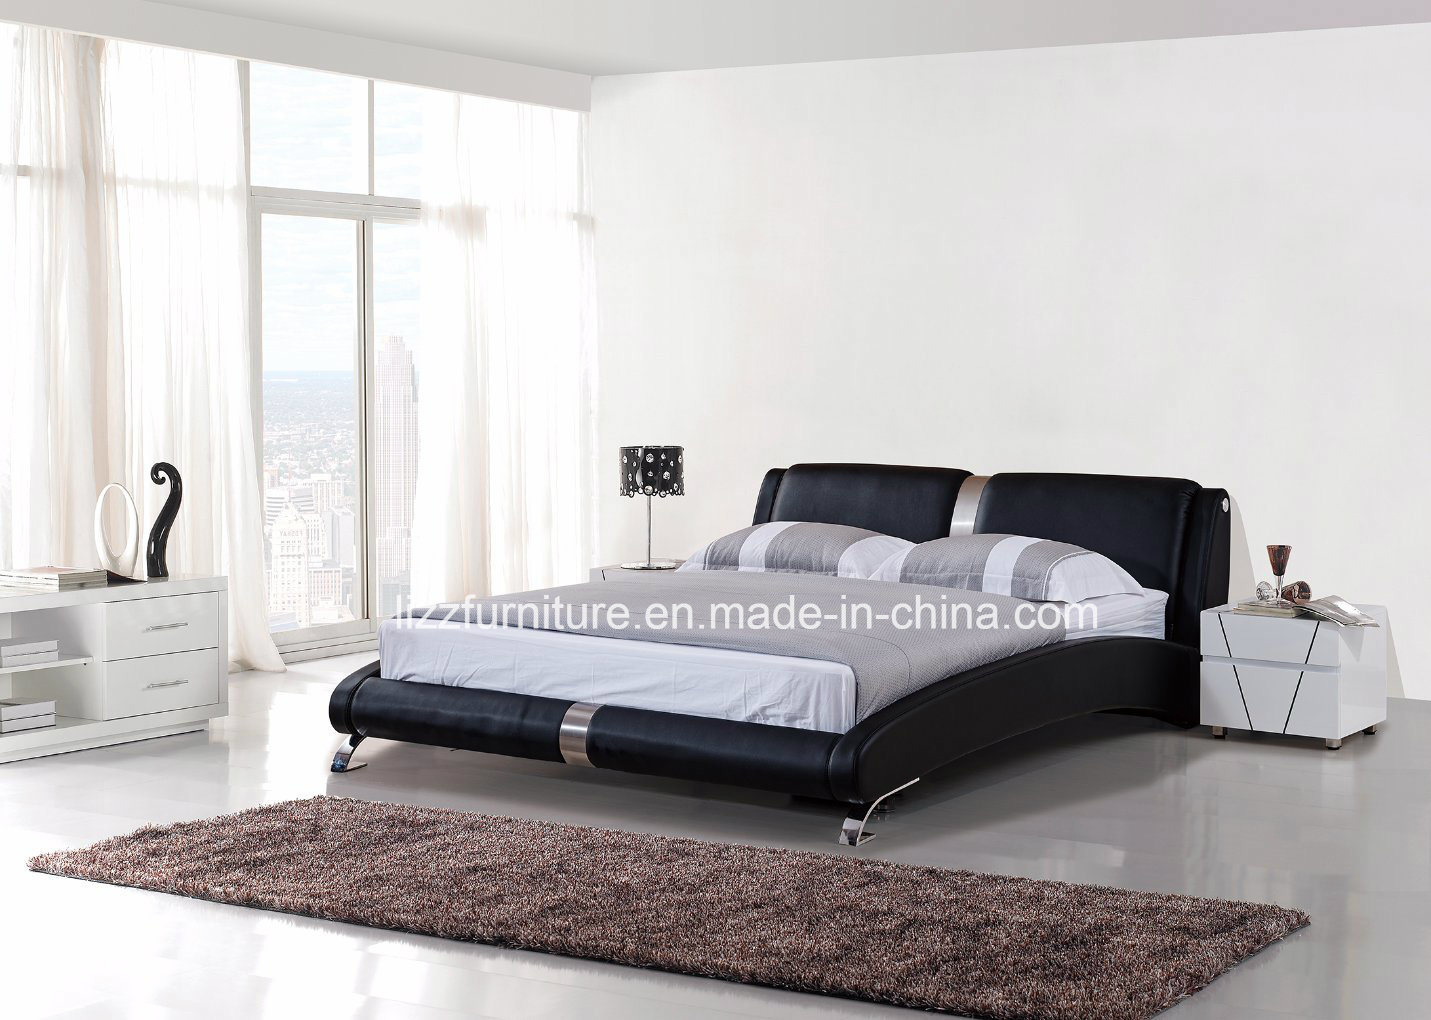 China stylish bedroom furniture dubai modern leather wooden bed china soft bed storage bed